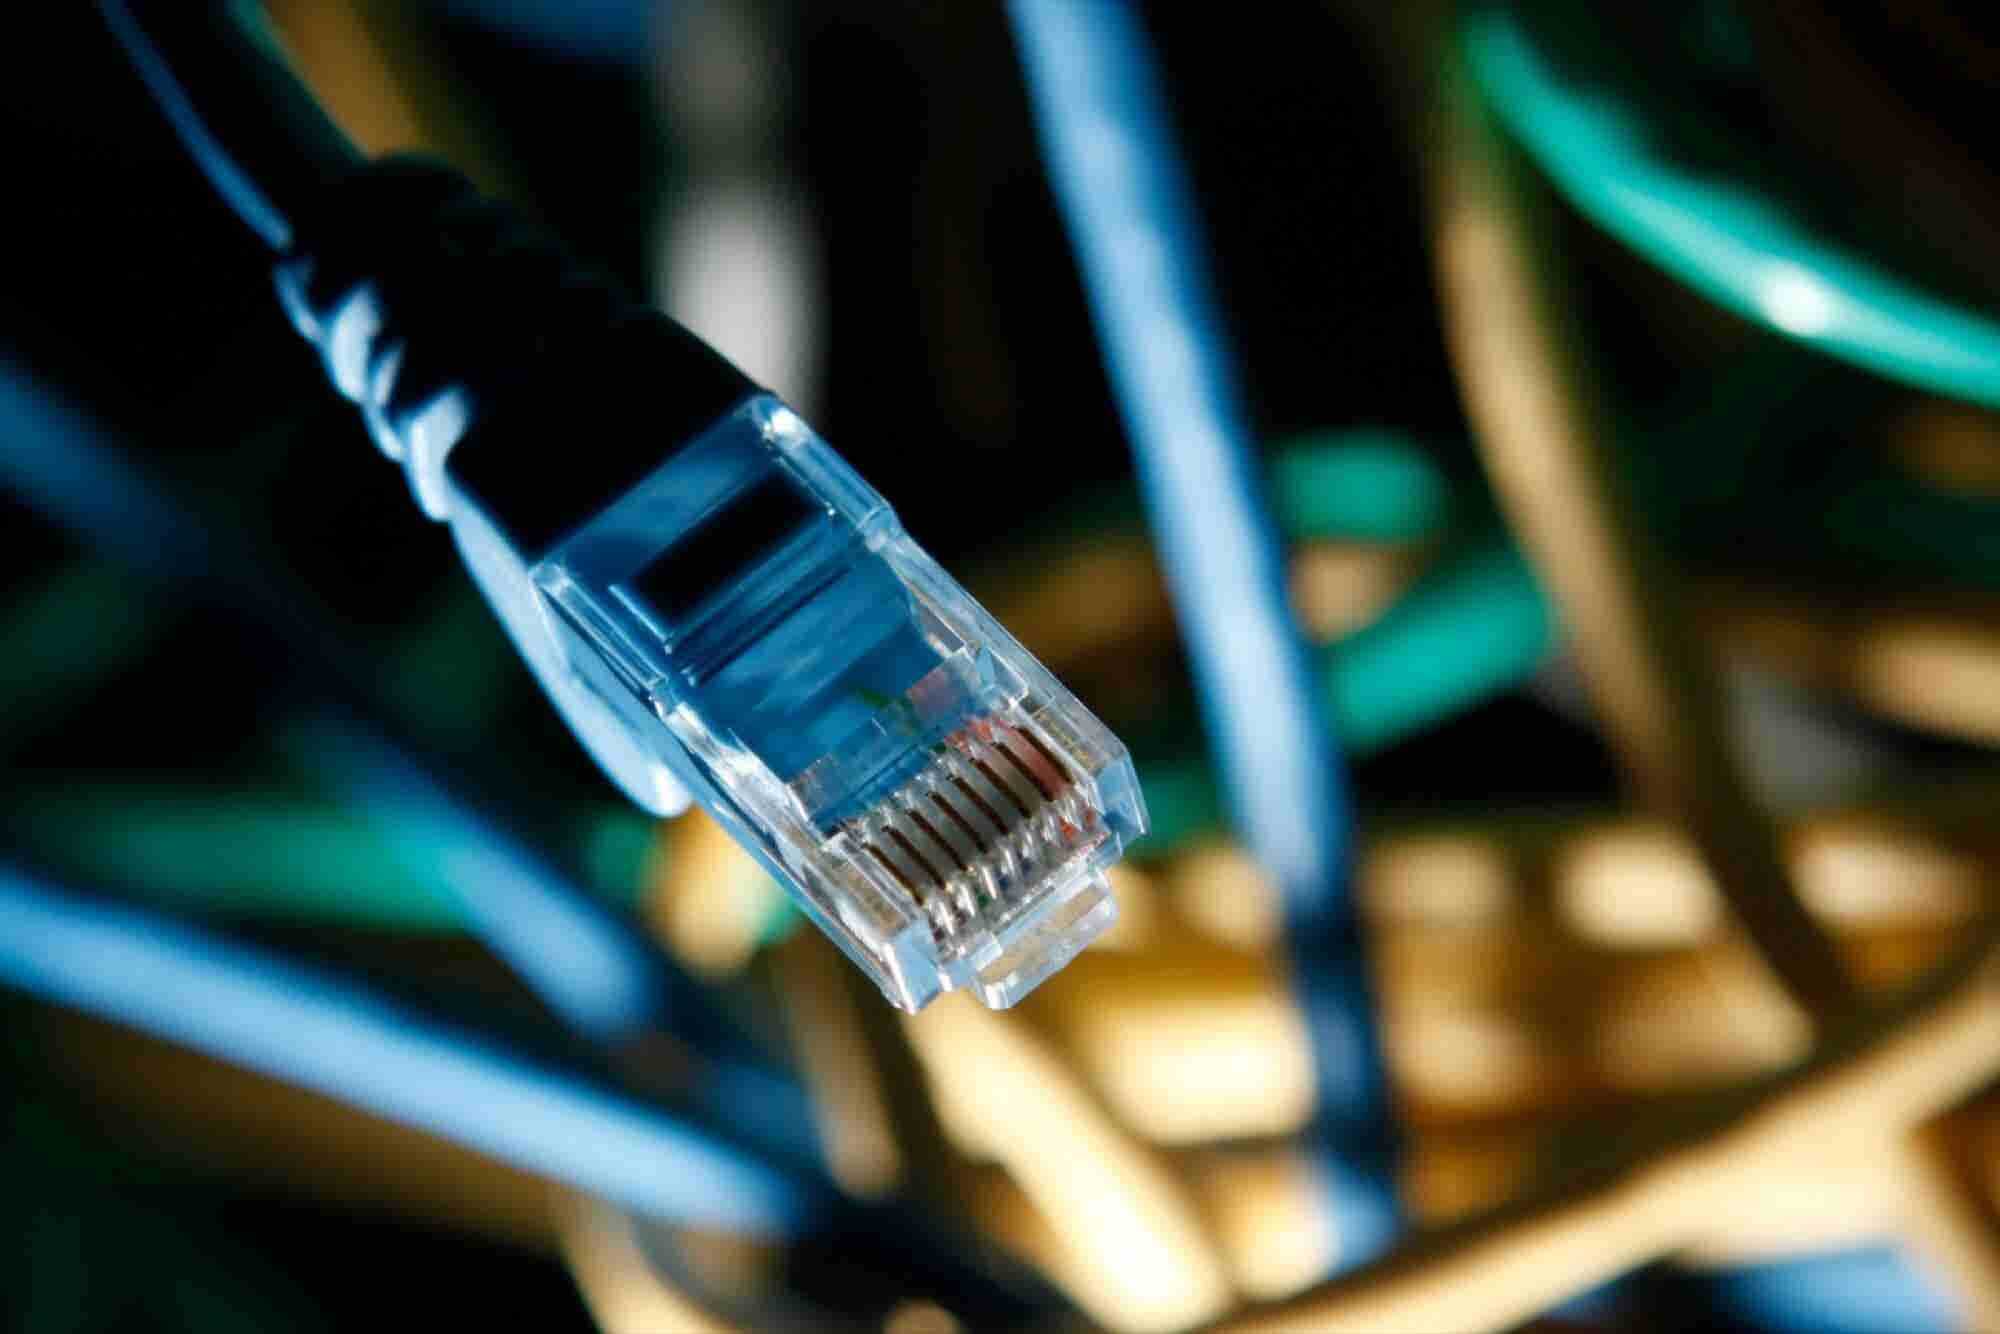 New York Attorney General Investigating Possible Broadband Speed Overcharges